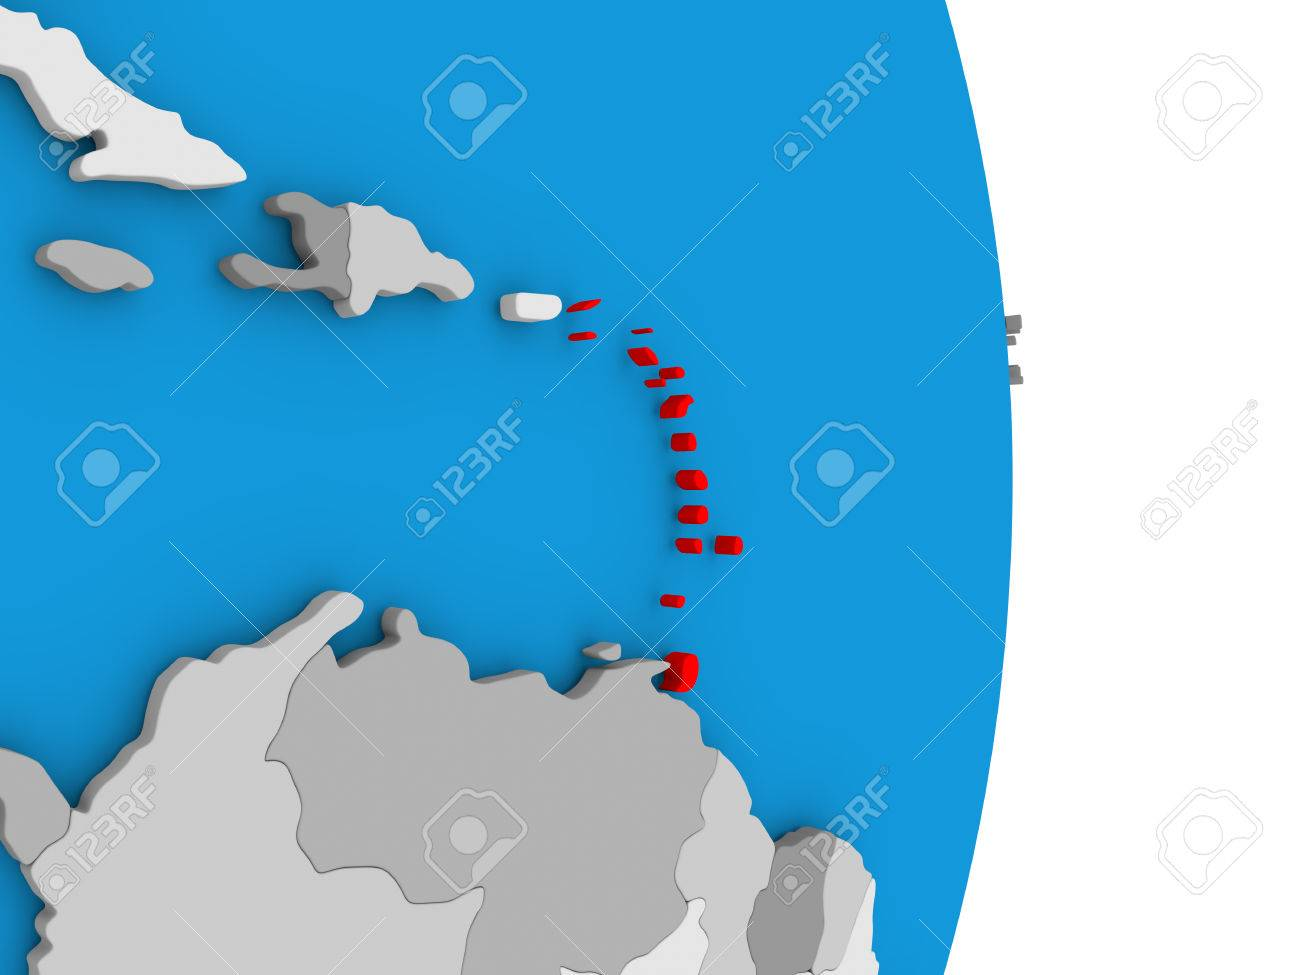 Map of caribbean in red on globe 3d illustration stock photo illustration map of caribbean in red on globe 3d illustration gumiabroncs Image collections